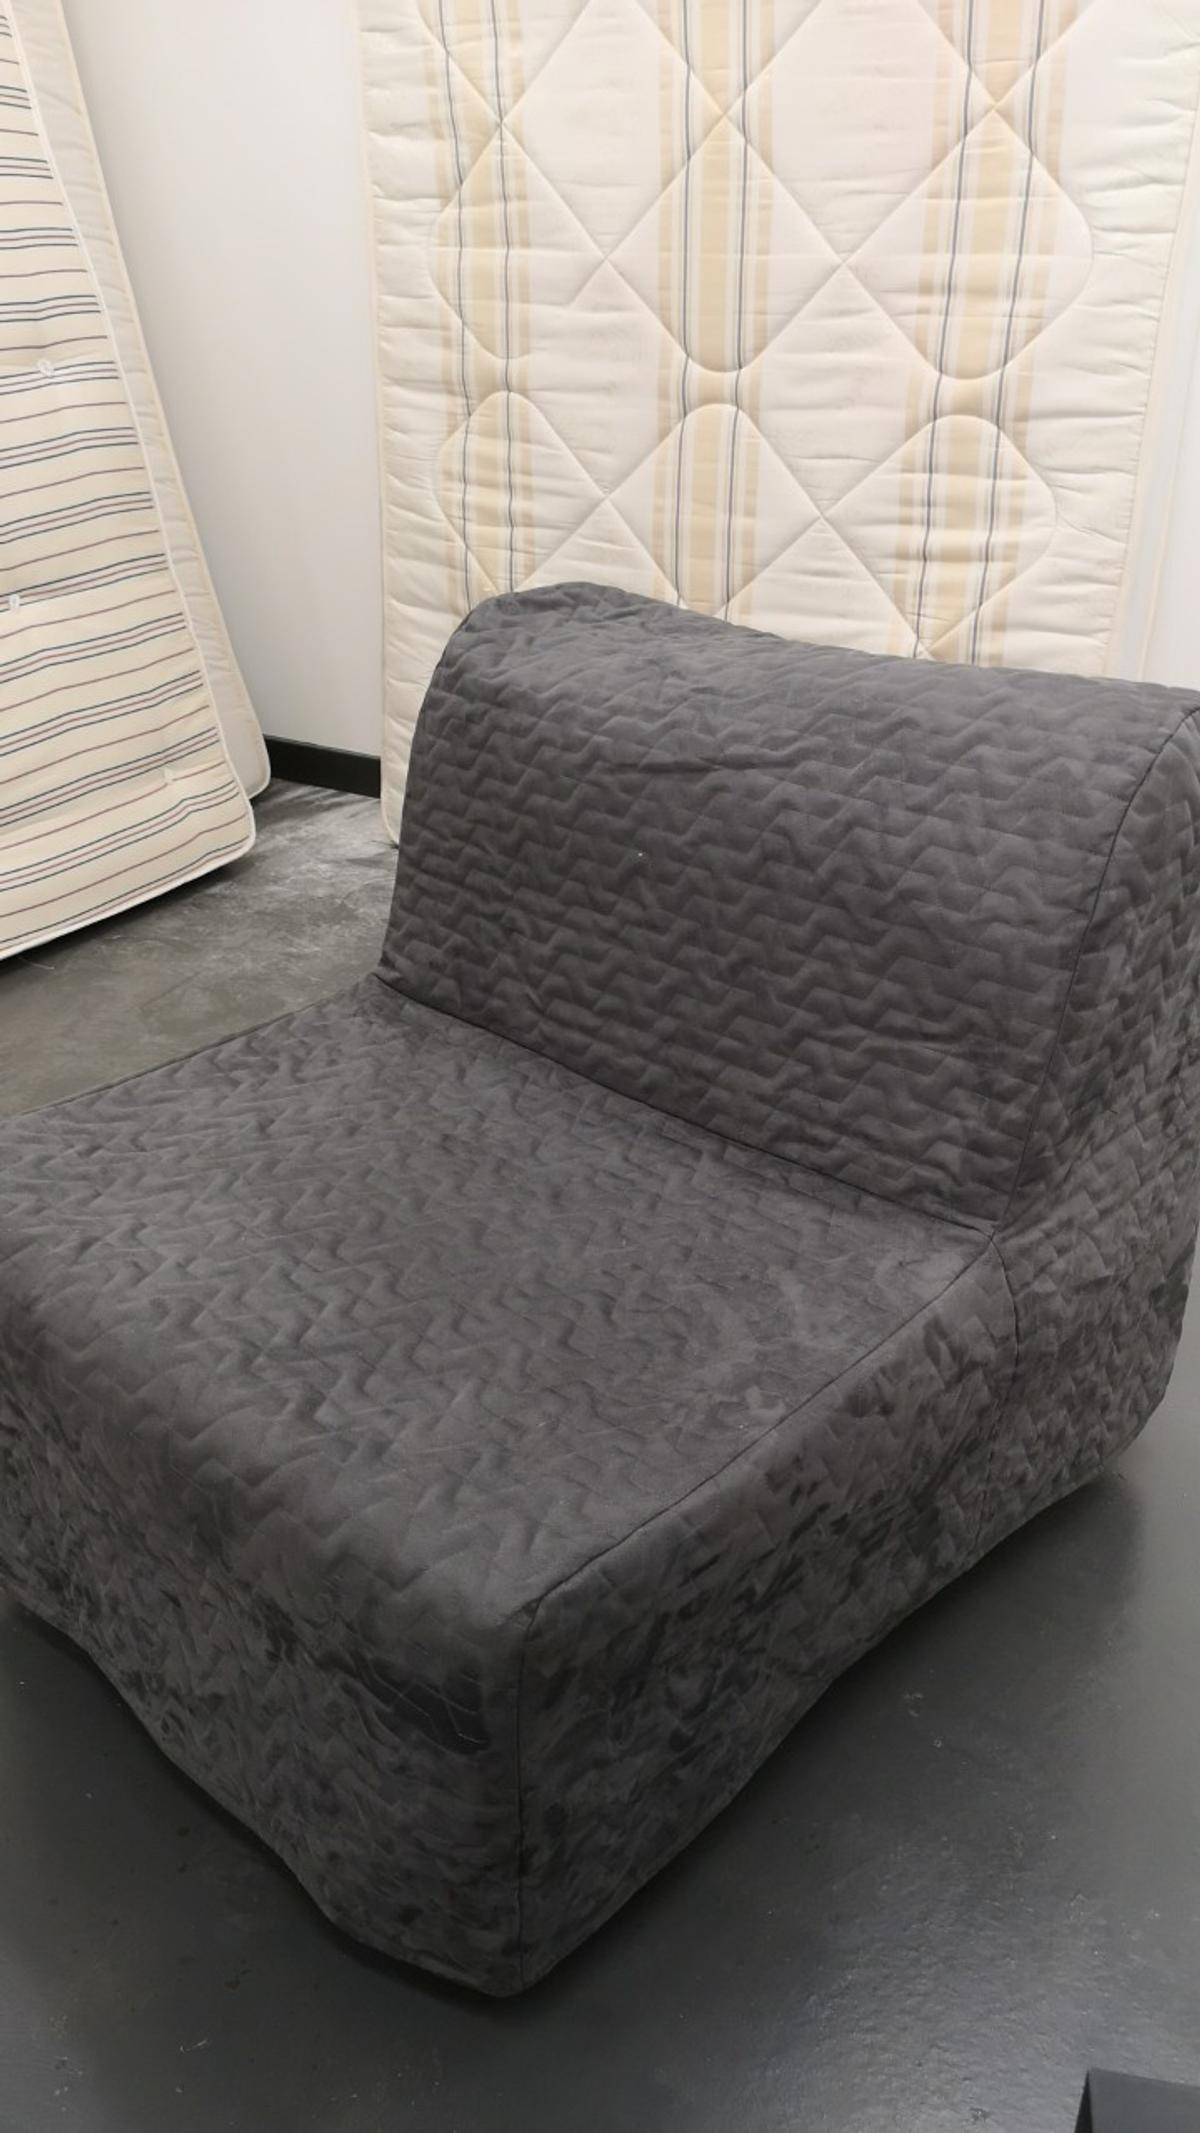 Swell Ikea Lycksele Lovas Single Sofa Bed In E20 London For 75 00 Alphanode Cool Chair Designs And Ideas Alphanodeonline